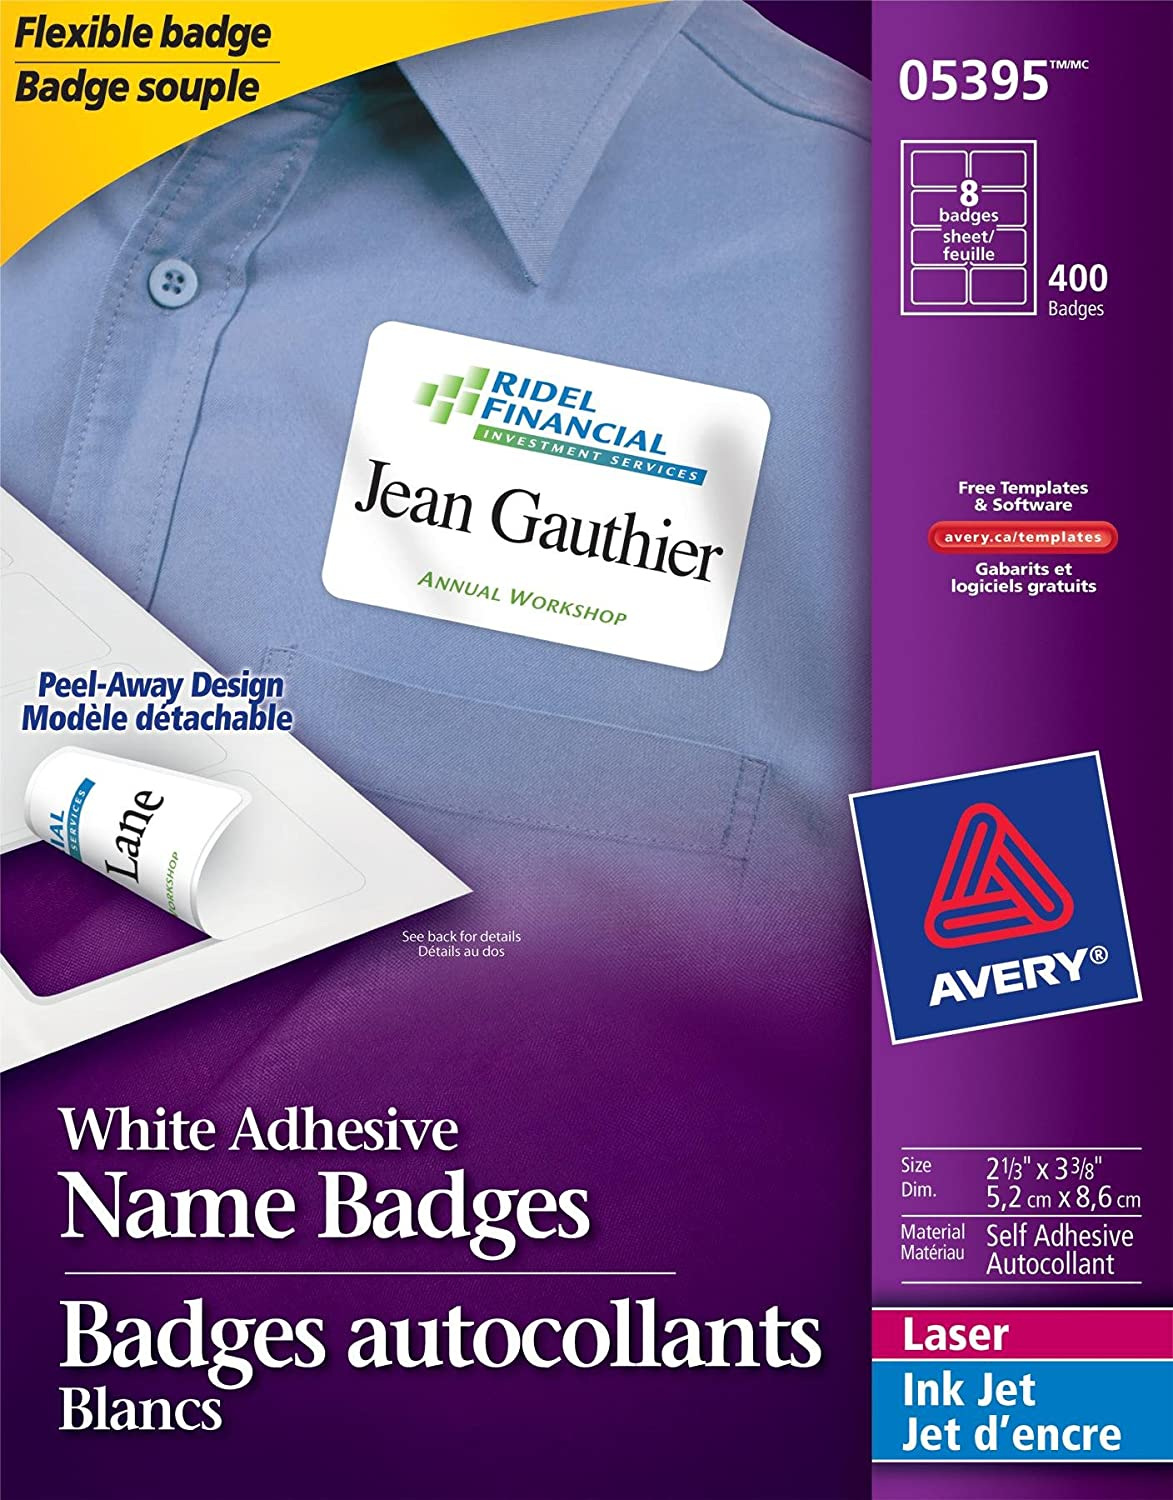 Avery Flexible Name Badges for Laser and Inkjet Printers, 3-3/8 x 2-1/3, Matte White, Rectangle, 400 Pack (5395) 3-3/8 x 2-1/3 Avery Dennison CA